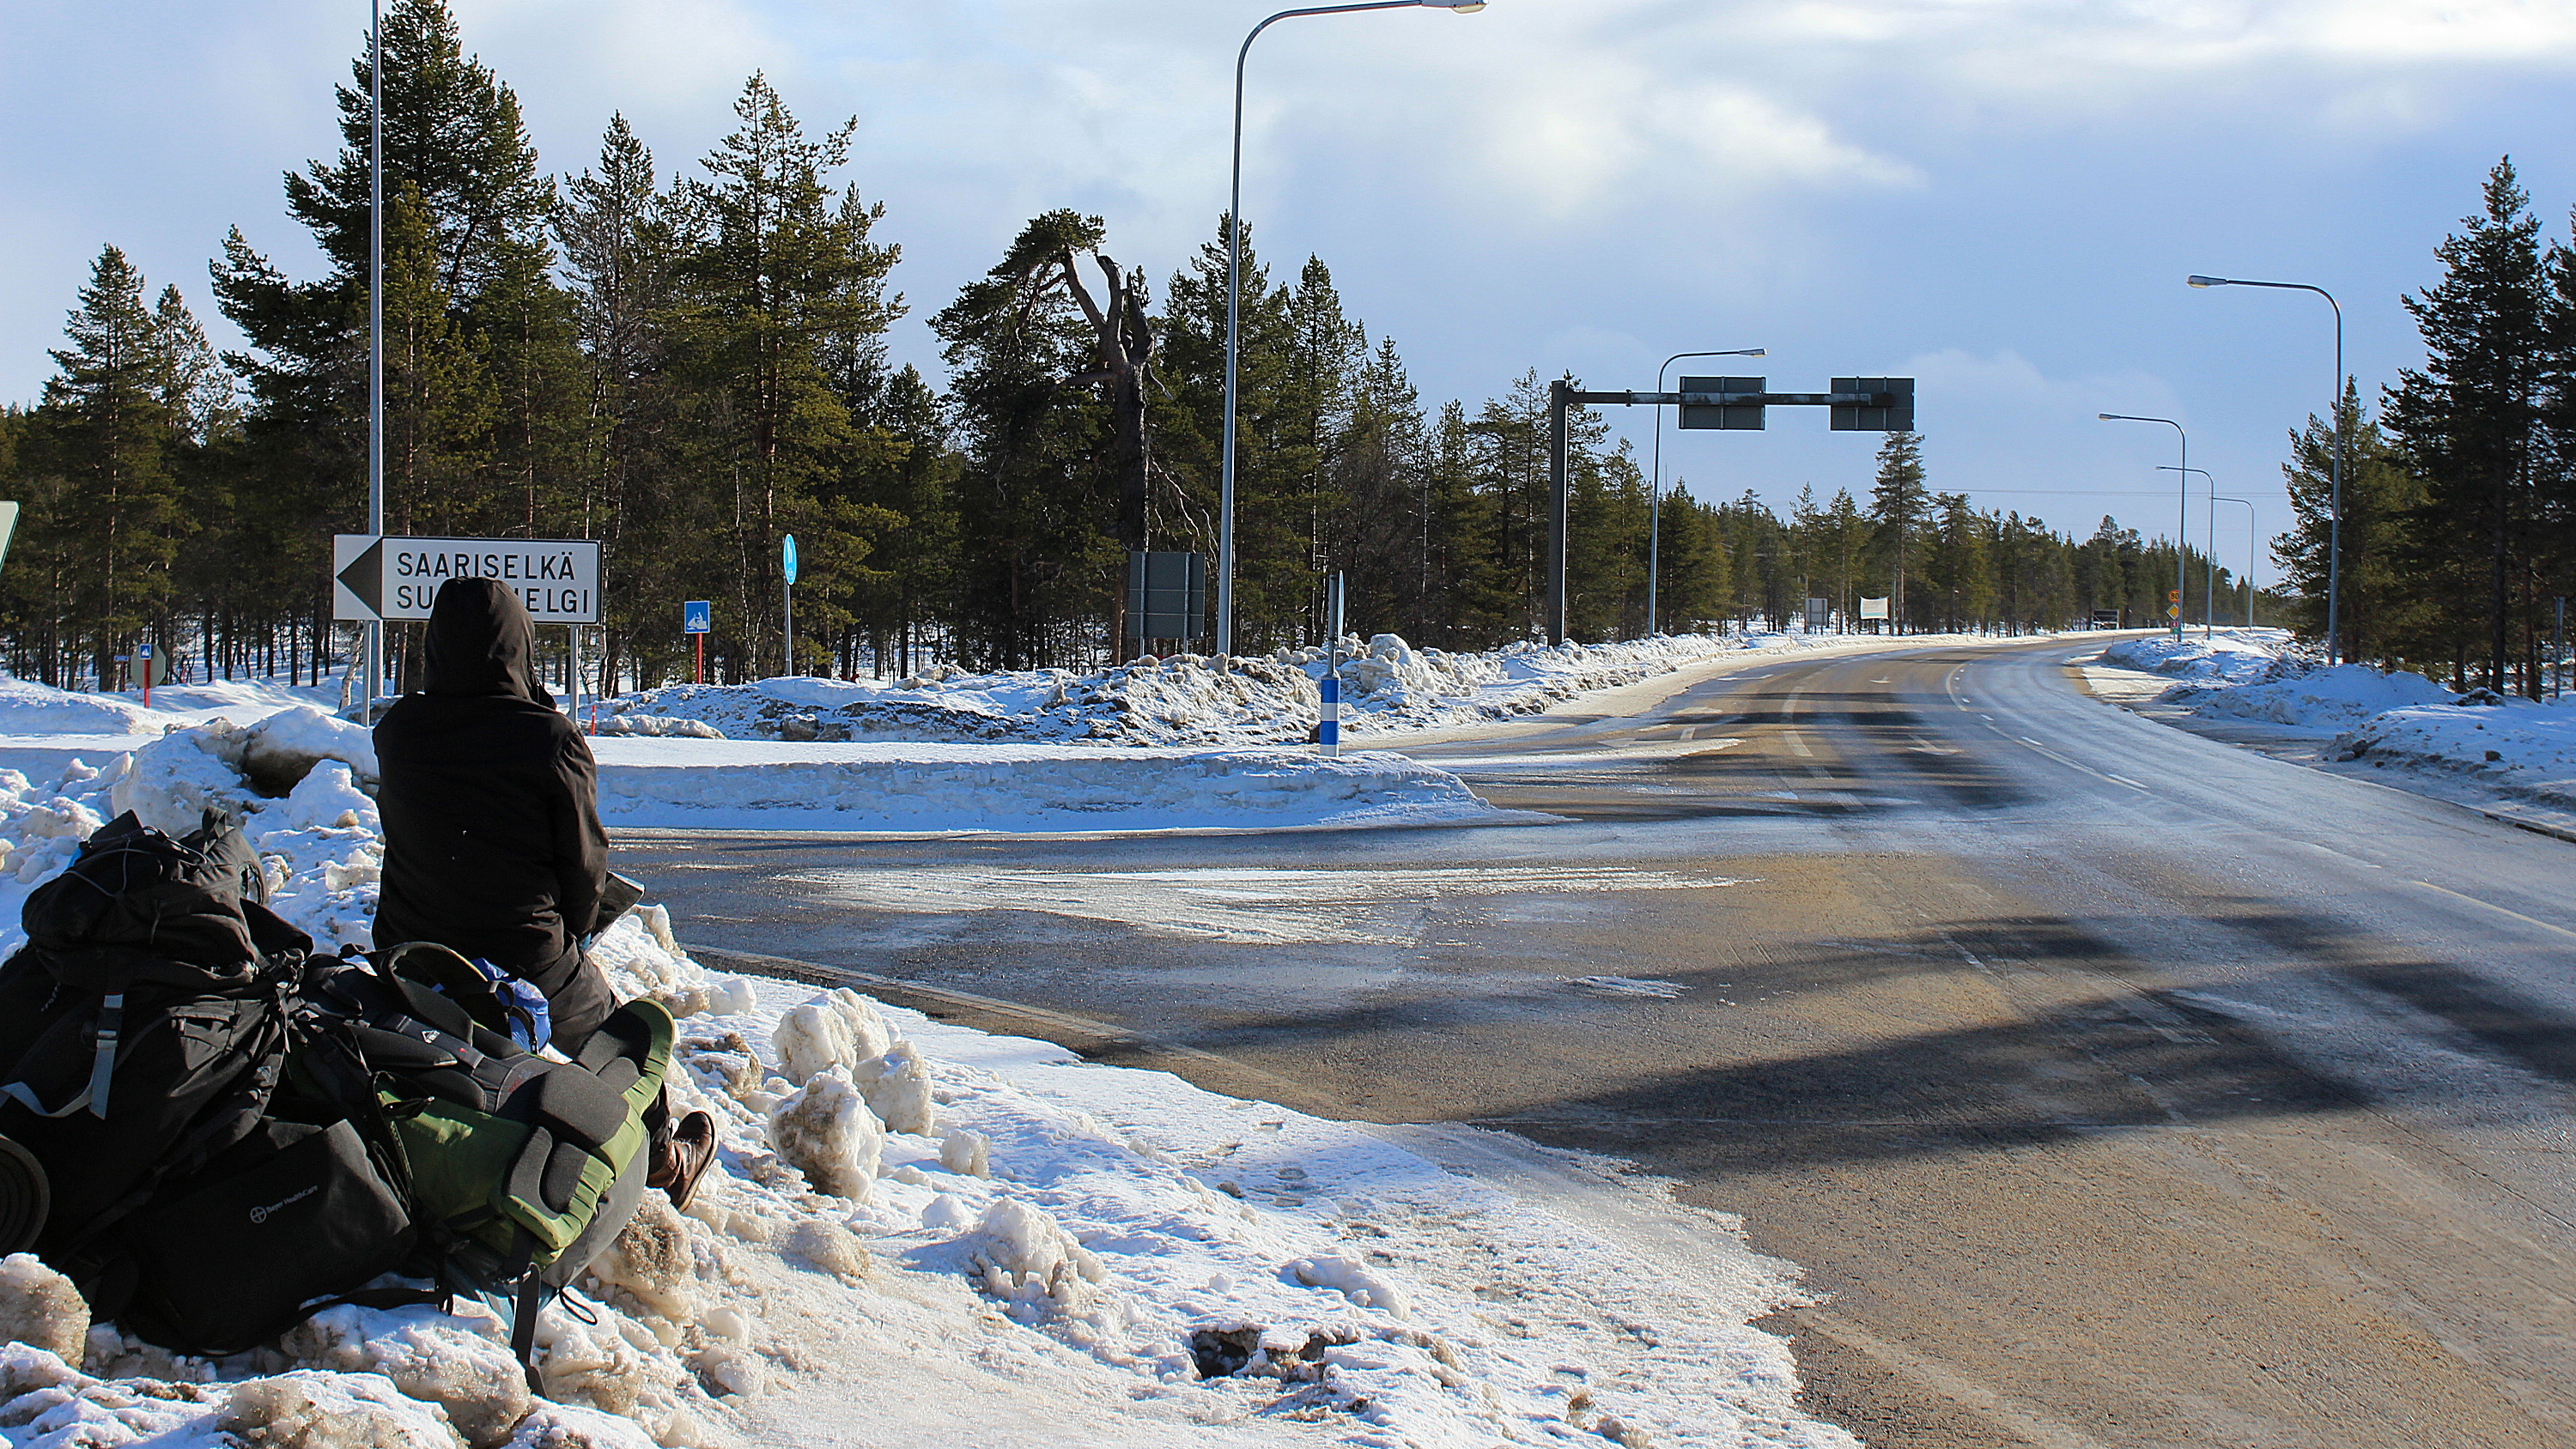 The Saariselkä crossroad in Lapland, Finland with a hitchhiker waiting in the snow for cars to come. / Liftari Lapissa Saariselän risteyksen kohdalla keväthangissa.